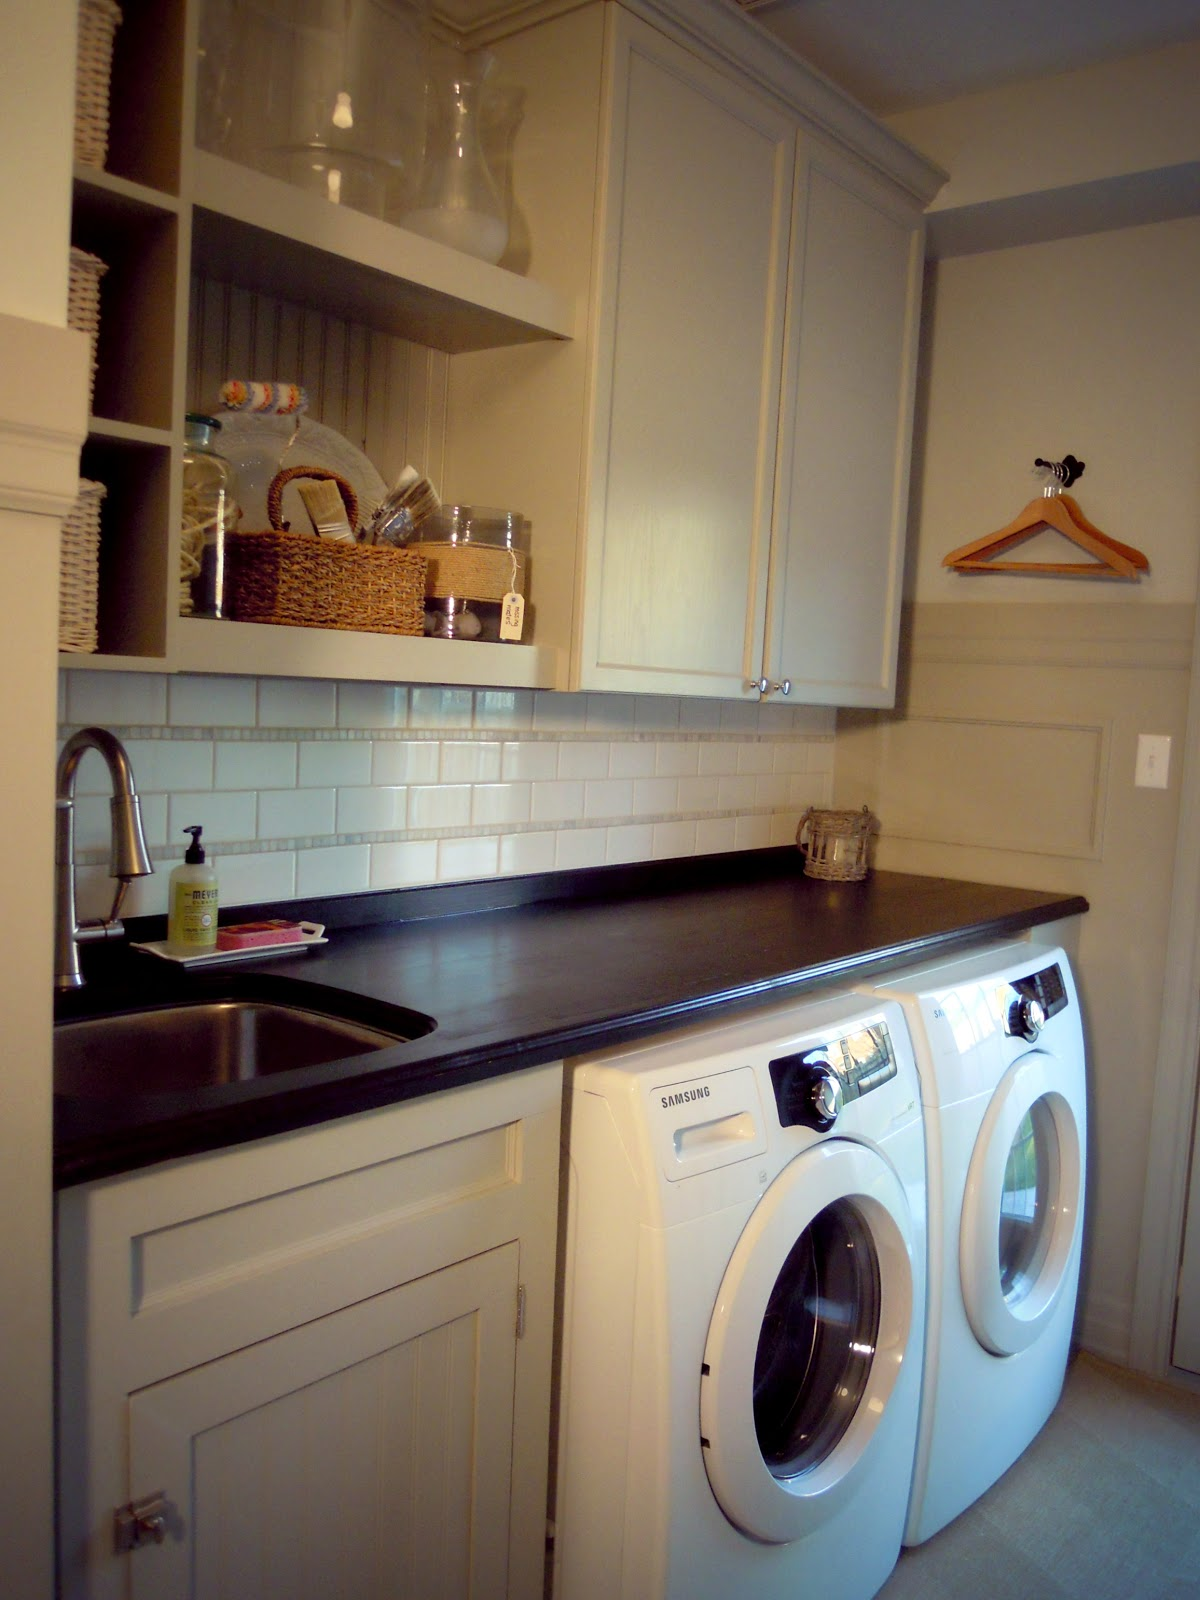 White Wood : Completed laundry room on Laundry Cabinets Ideas  id=82187